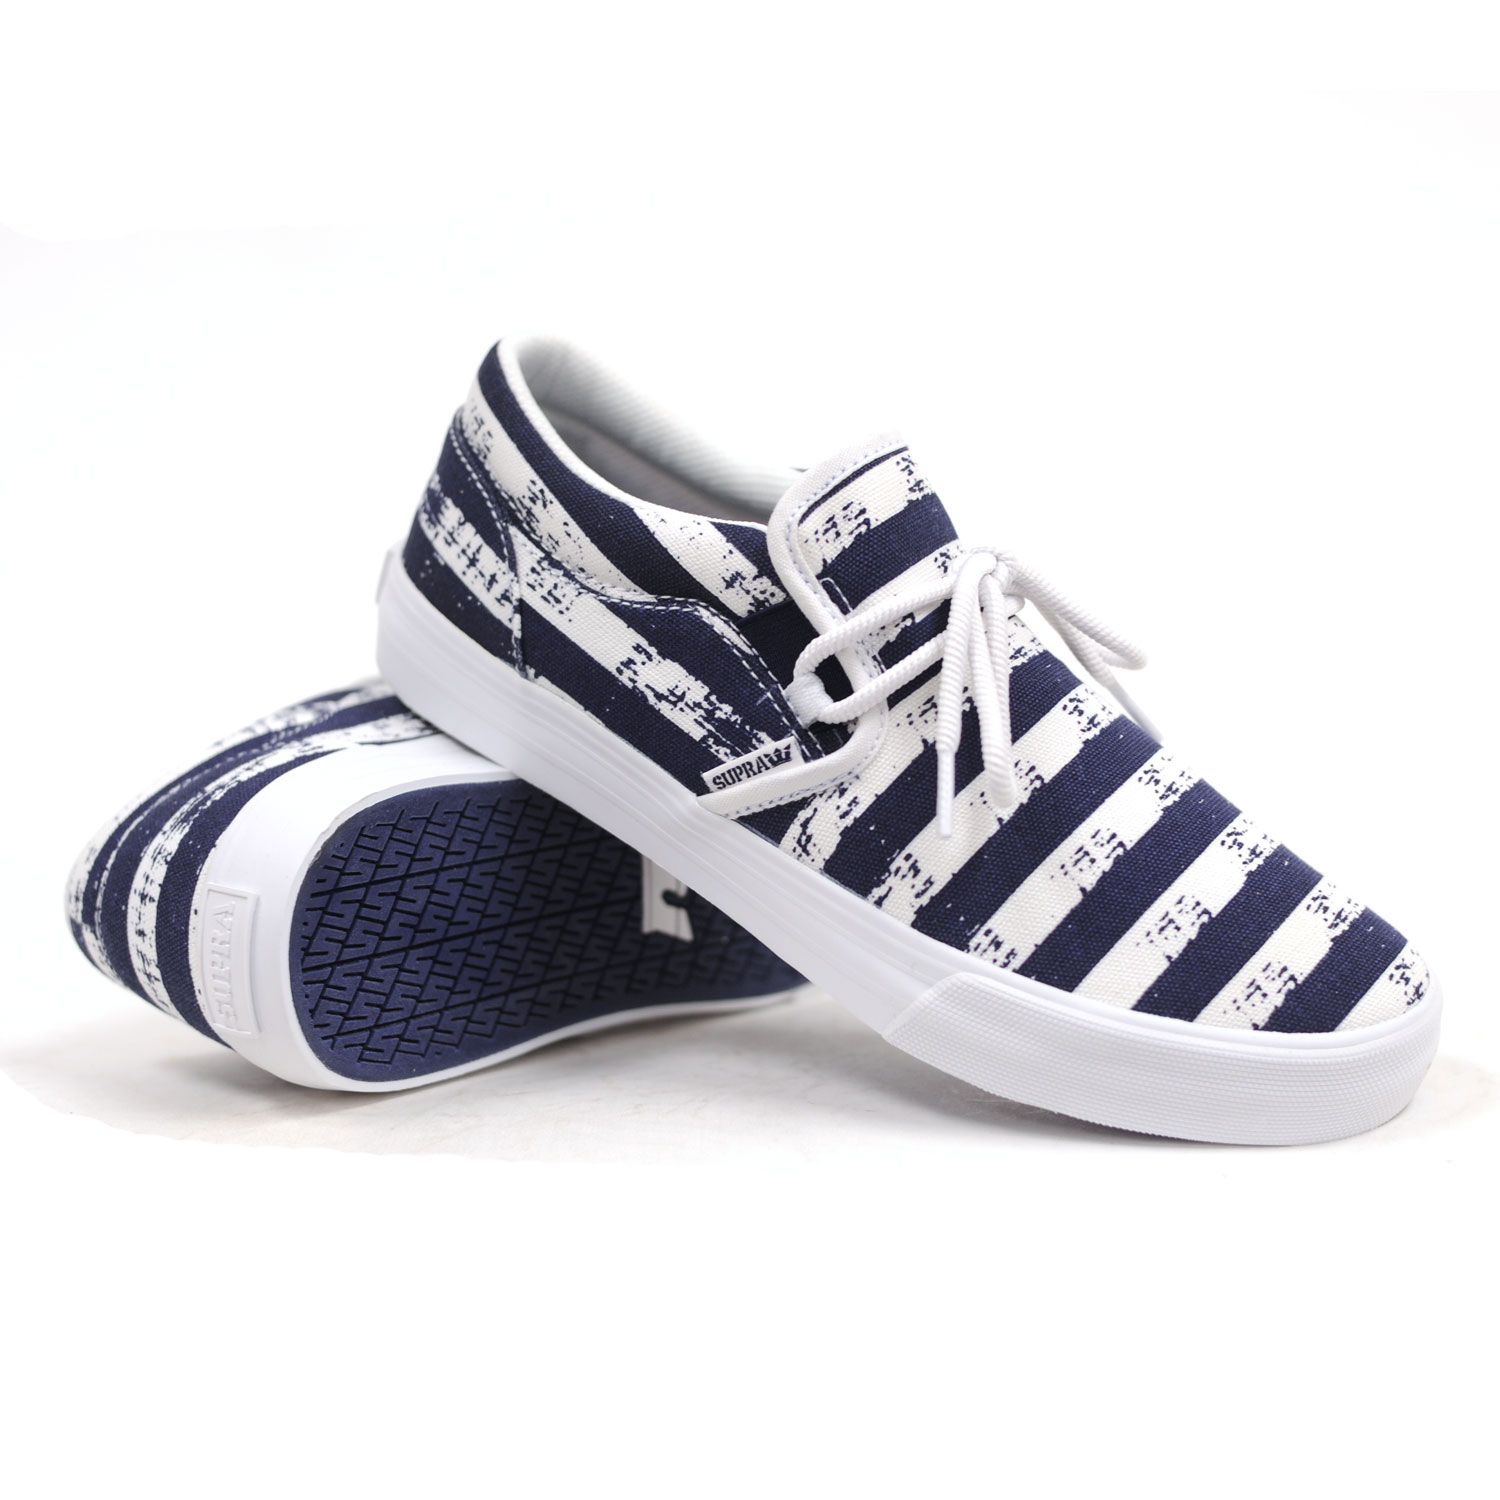 Shop for womens striped shoes online at Target. Free shipping on purchases over $35 and save 5% every day with your Target REDcard.